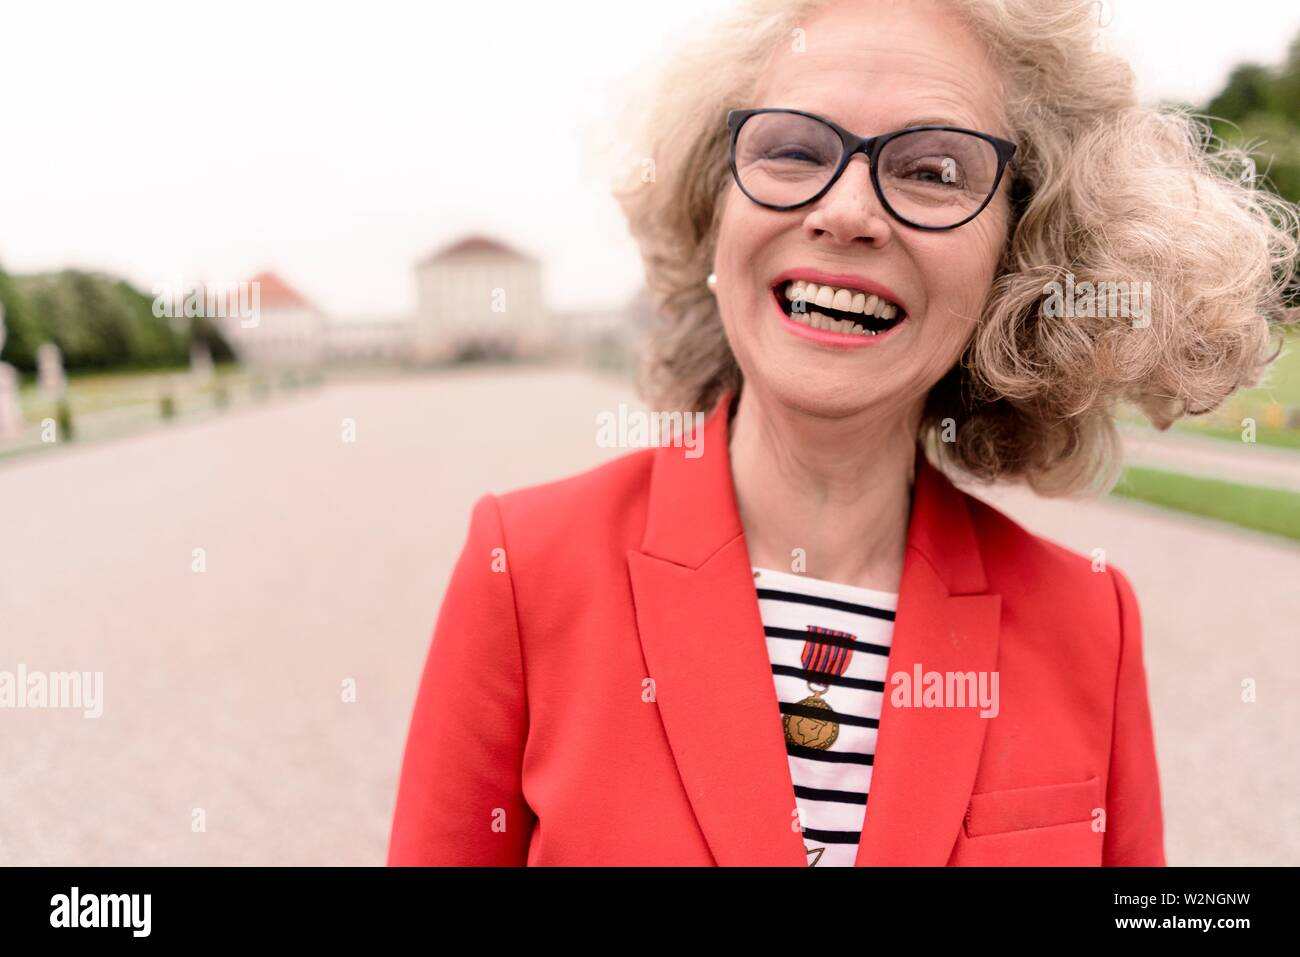 happy senior woman (67 years old) laughing in park at touristic sight Nymphenburg palace, in Munich, Germany. - Stock Image